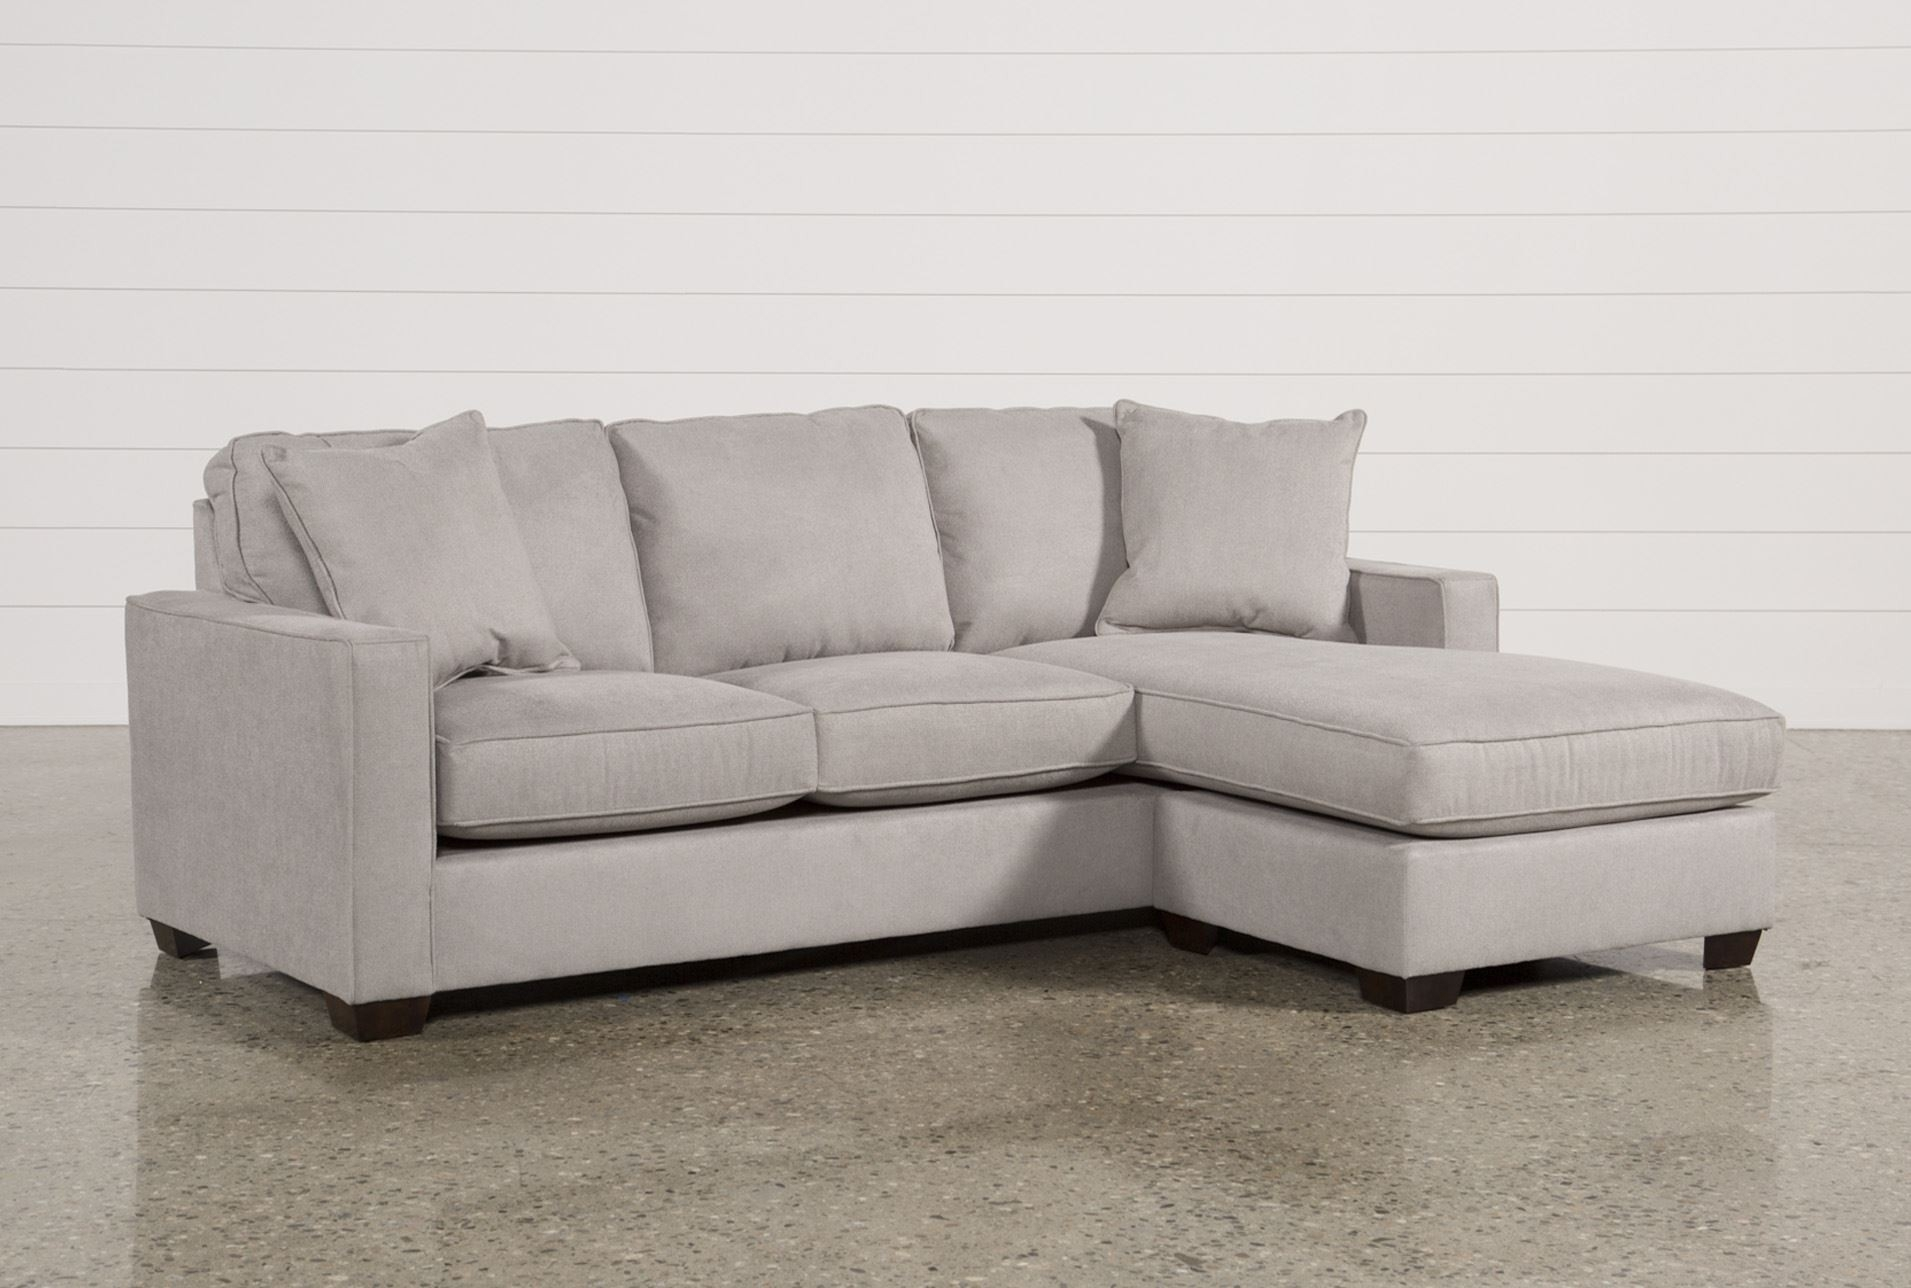 Living Spaces Sectional Sofas Kerri 2 Piece W Raf Chaise 107153 0 Throughout Kerri 2 Piece Sectionals With Laf Chaise (View 13 of 25)